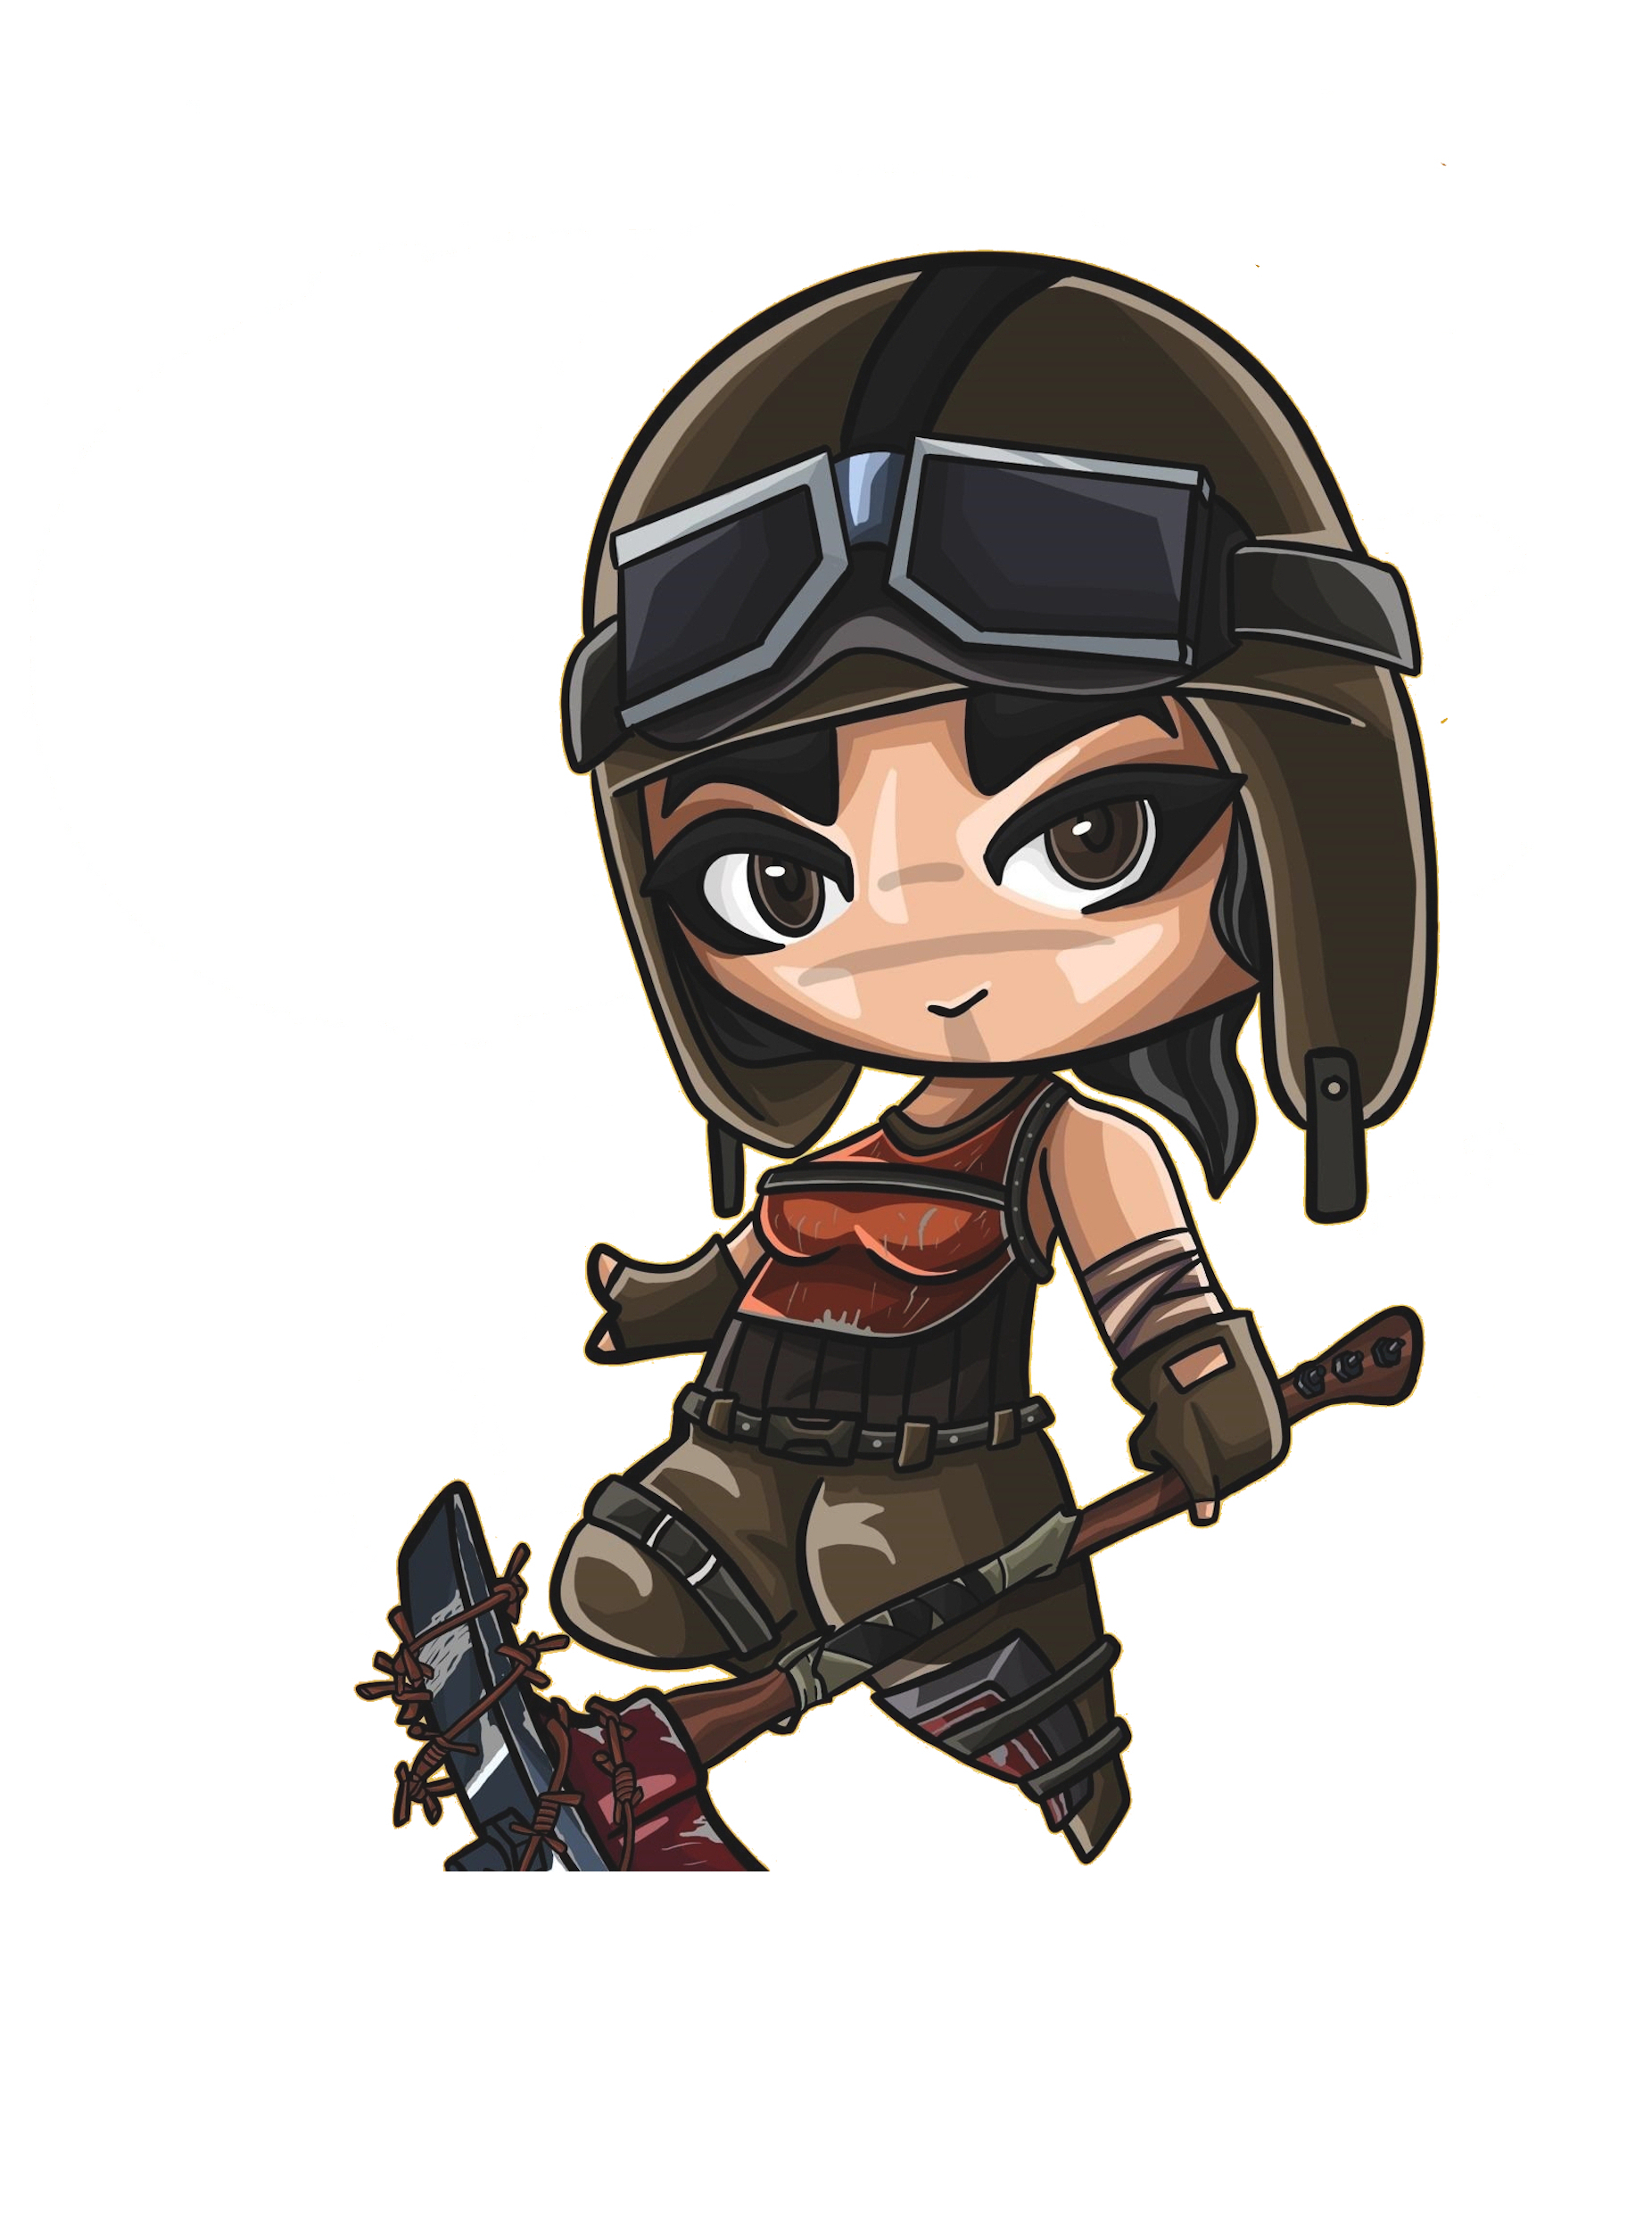 Renegade Raider Fortnite Skin Wallpaper